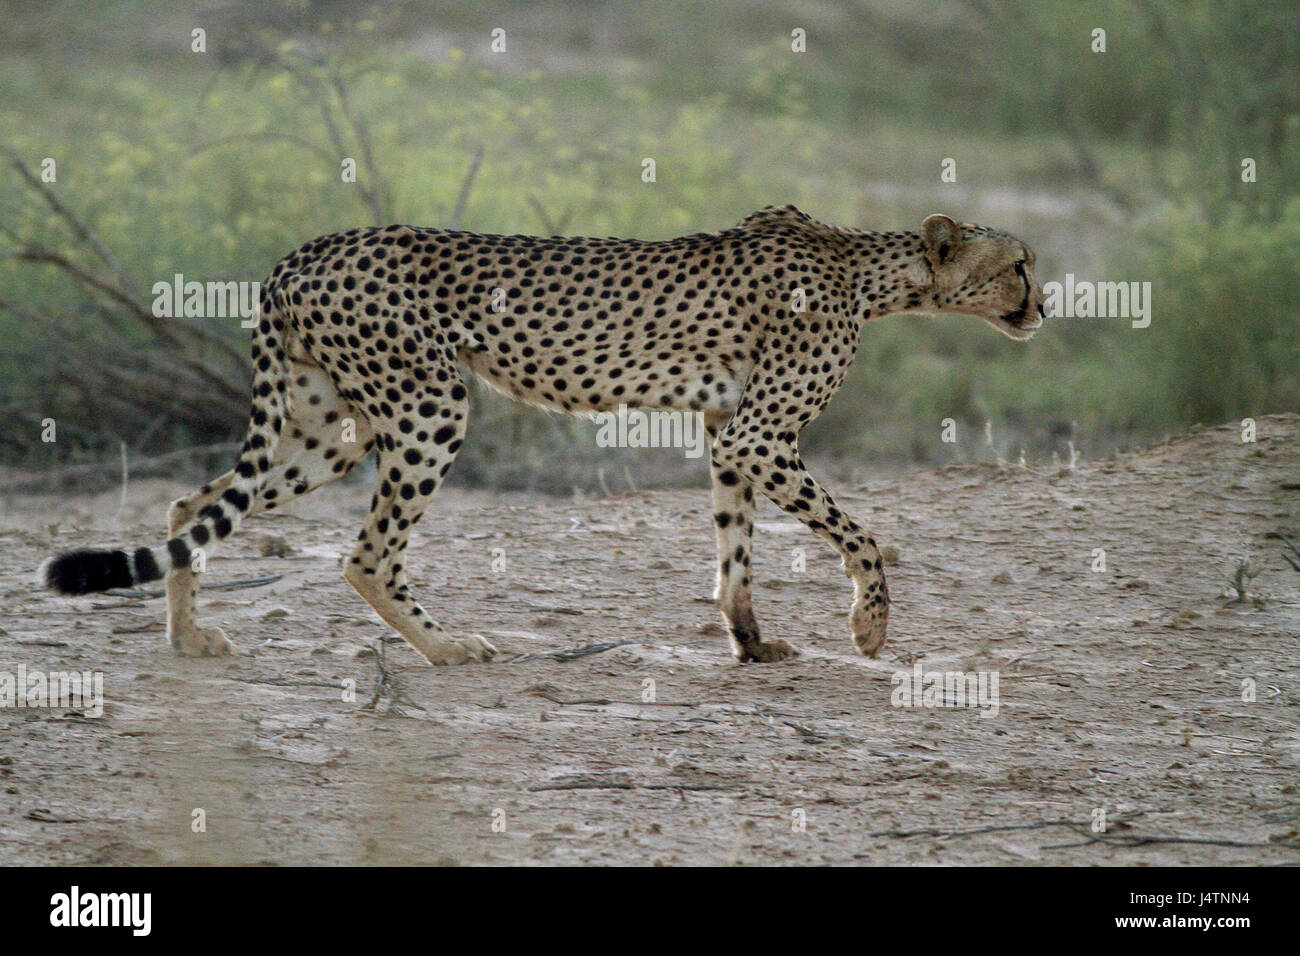 Male Cheetah stalking in the Kgalagadi Transfrontier Park bush - Stock Image